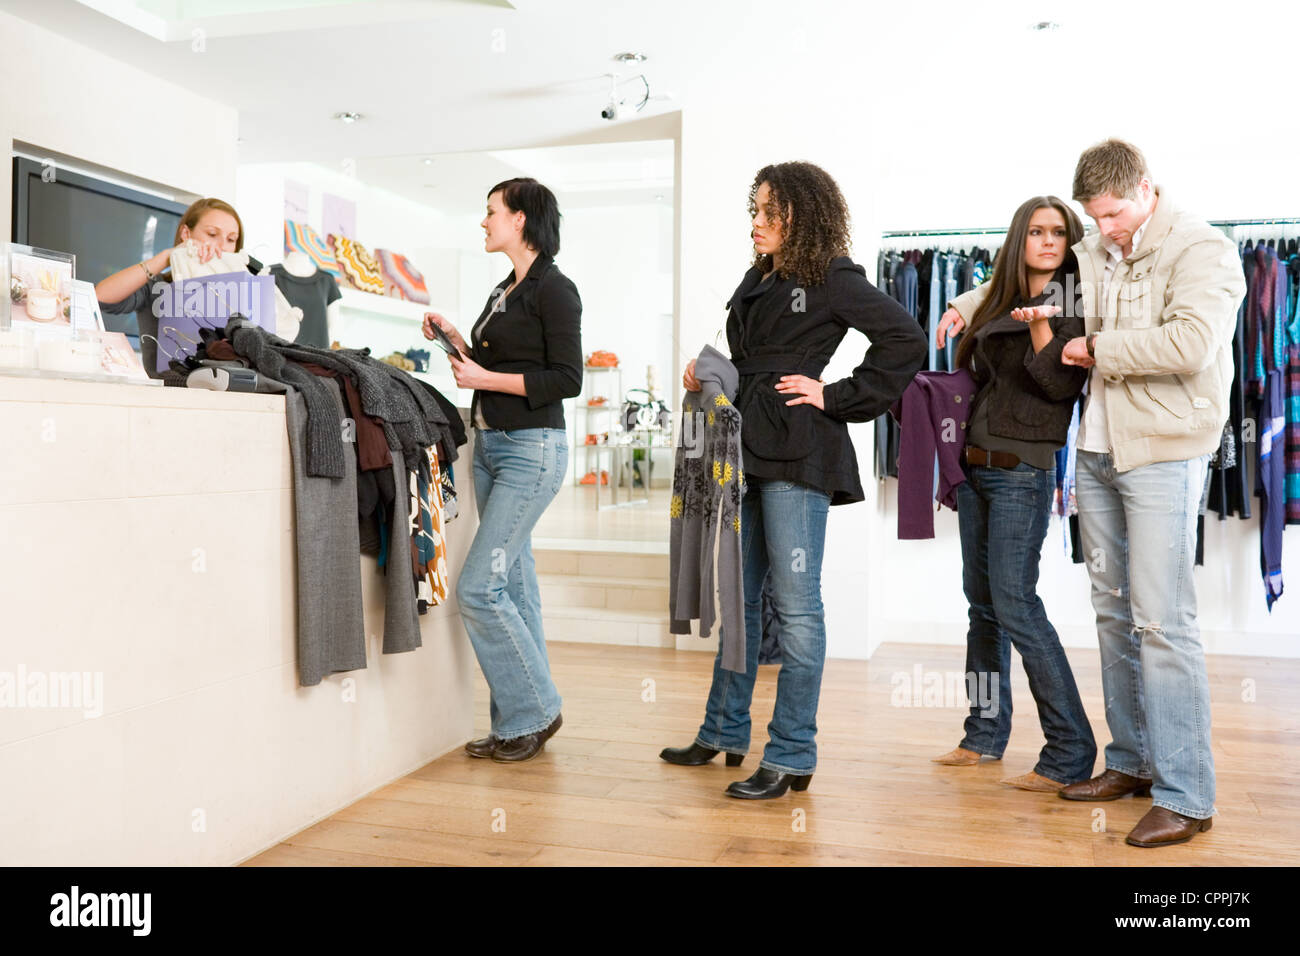 People queuing in a clothes shop - Stock Image